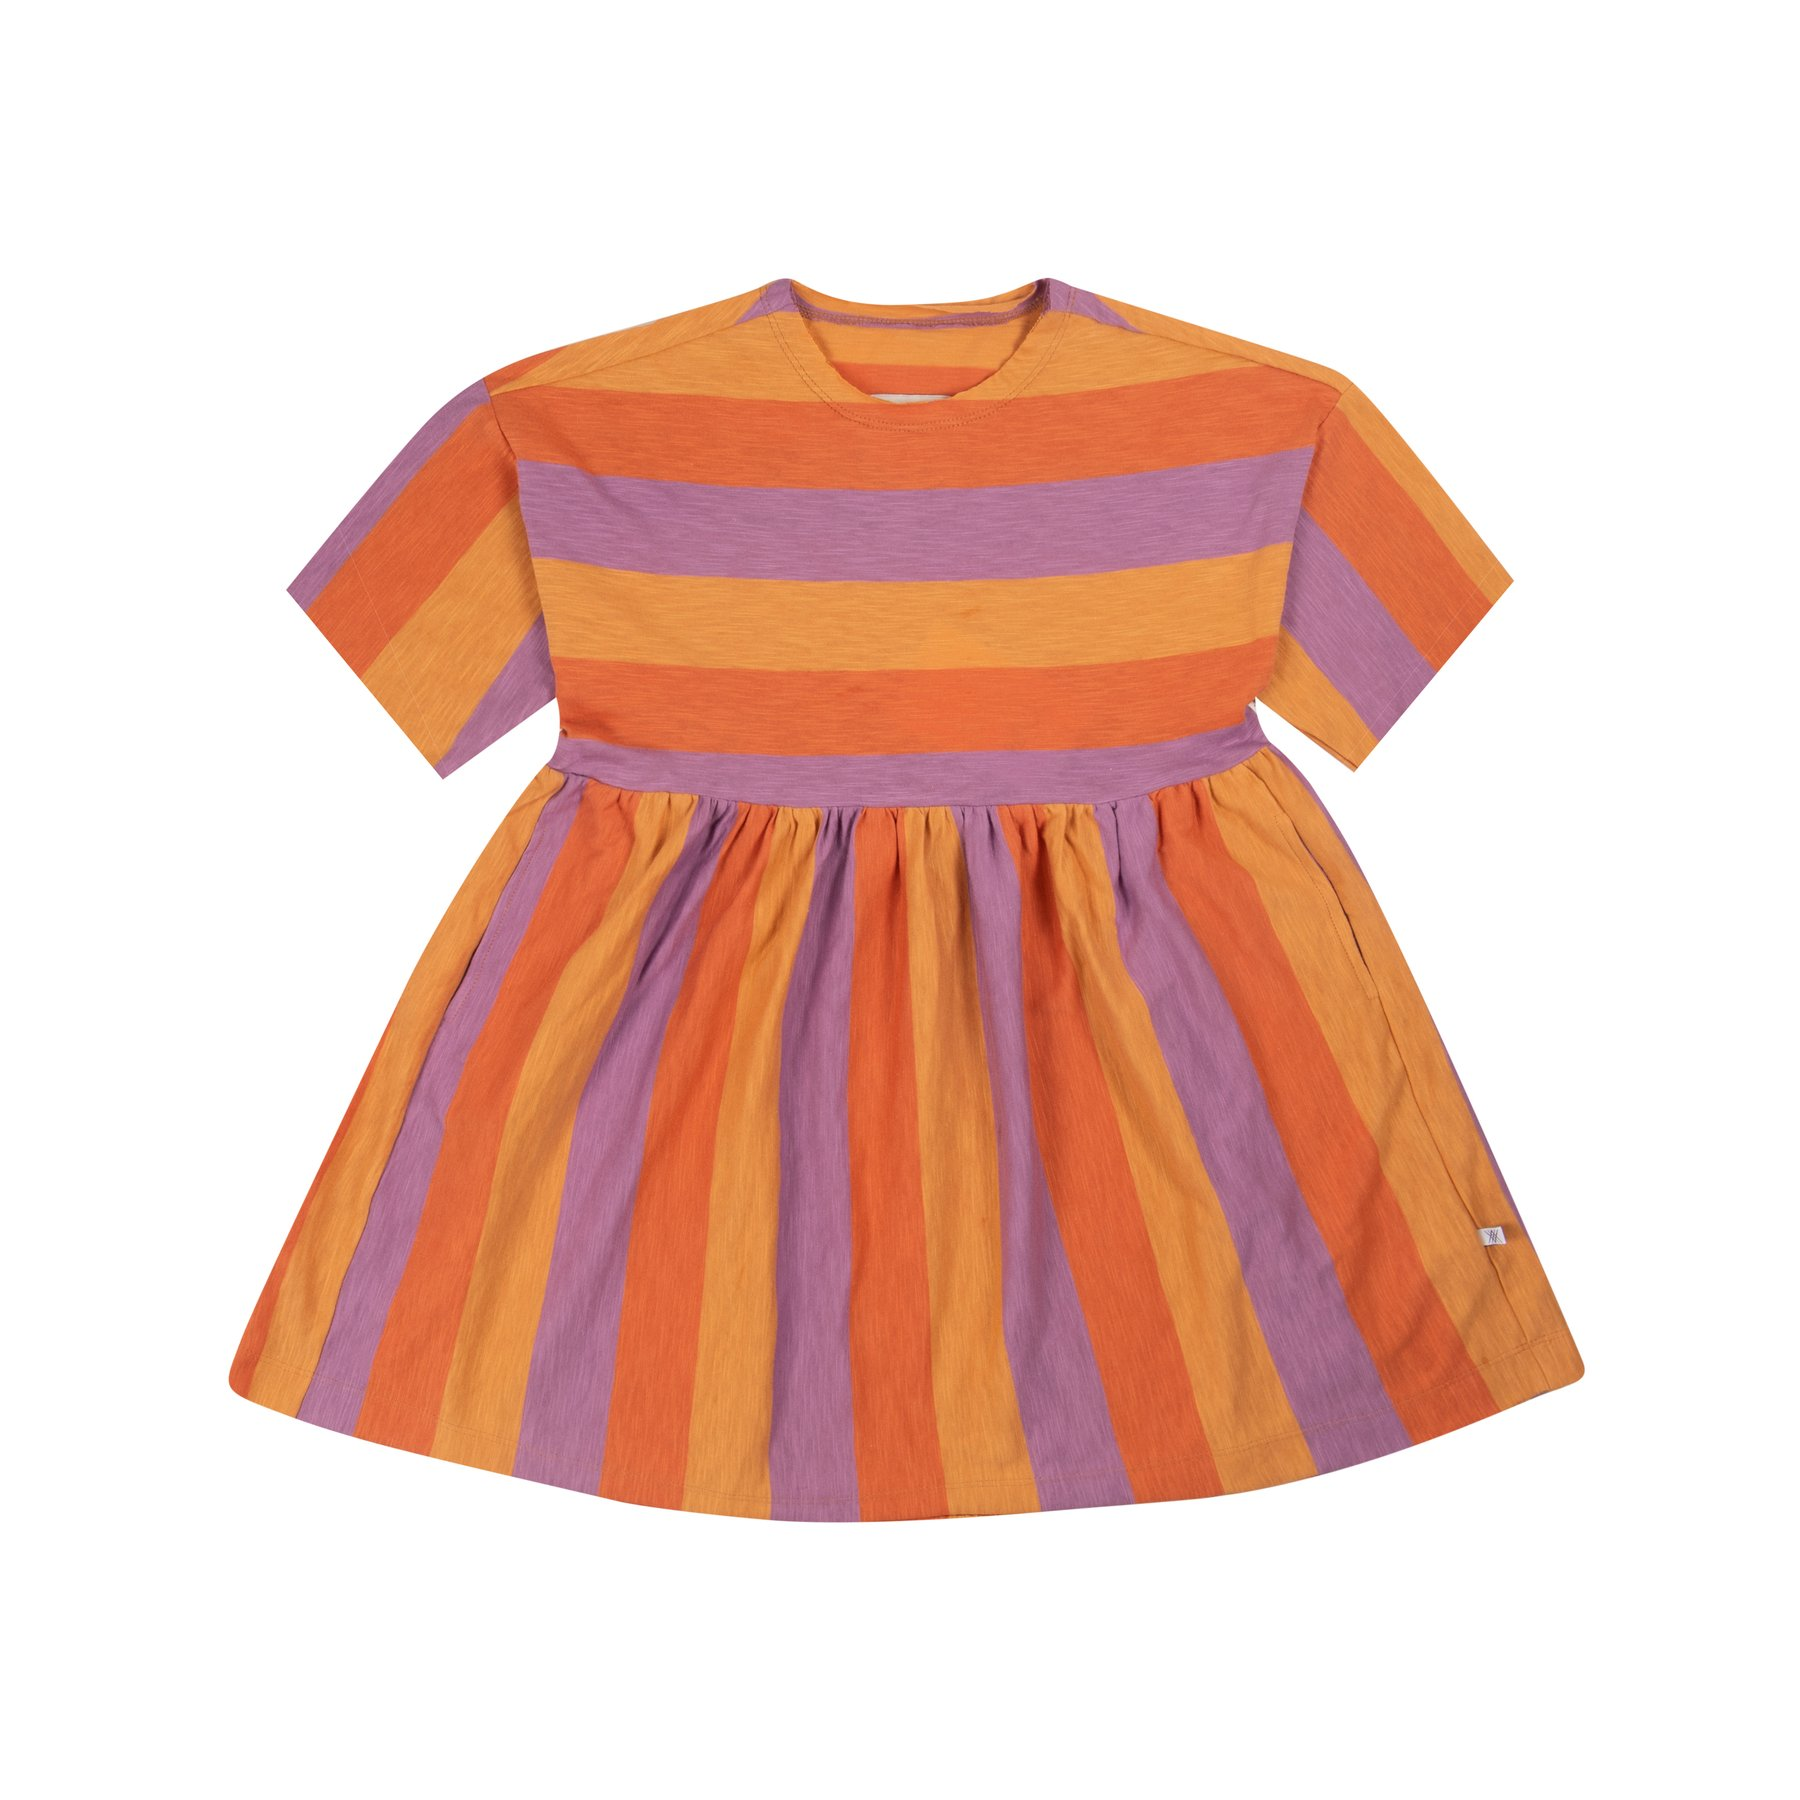 Repose AMS - Simple Dress Peachy Lavender